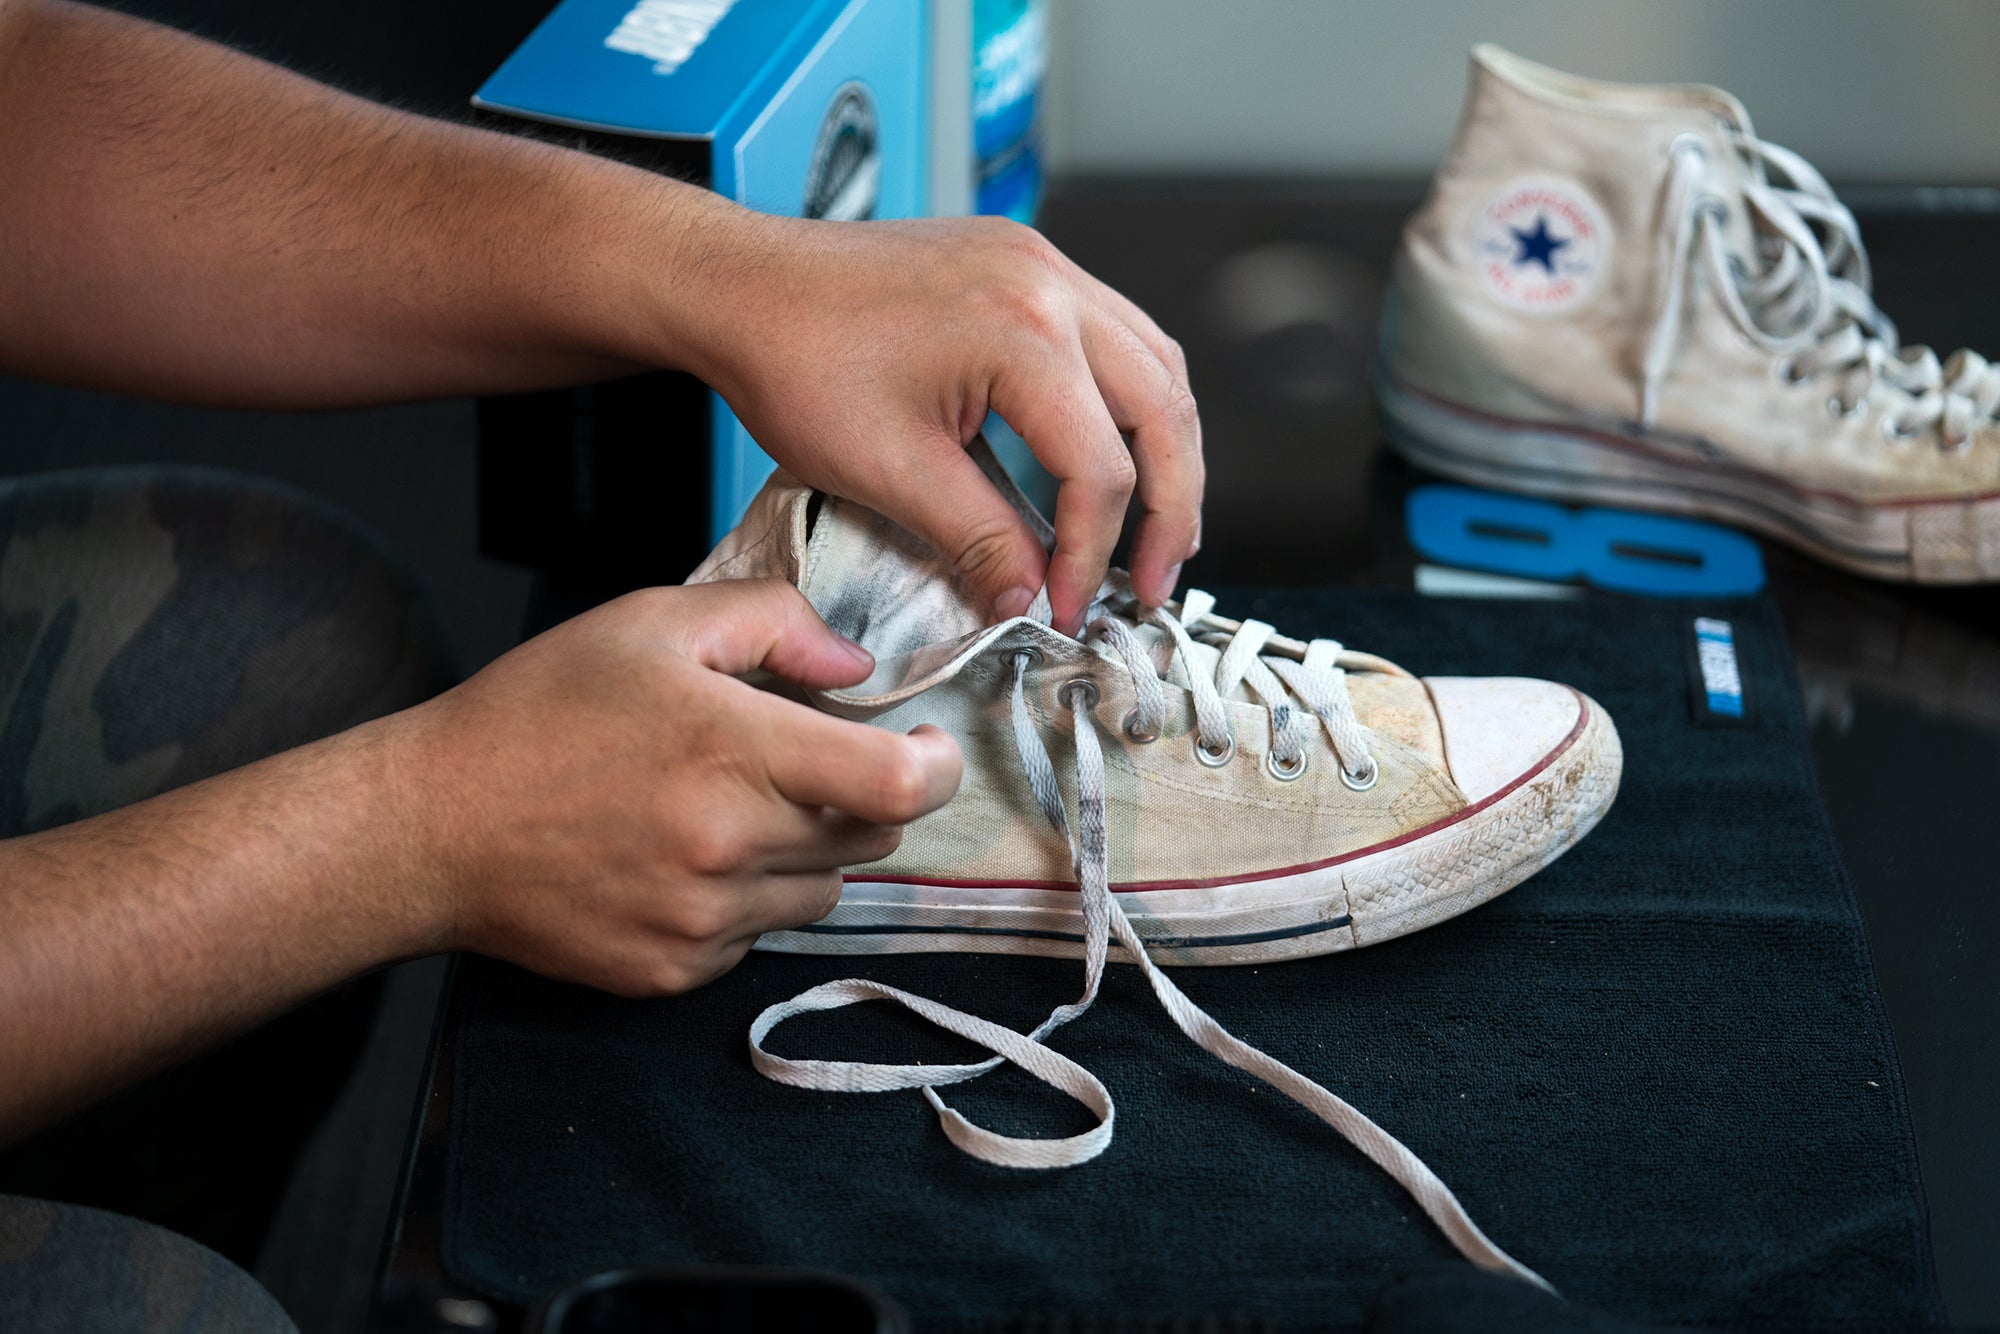 Remove your shoelaces and rinse your shoes with cold water to clean your shoes